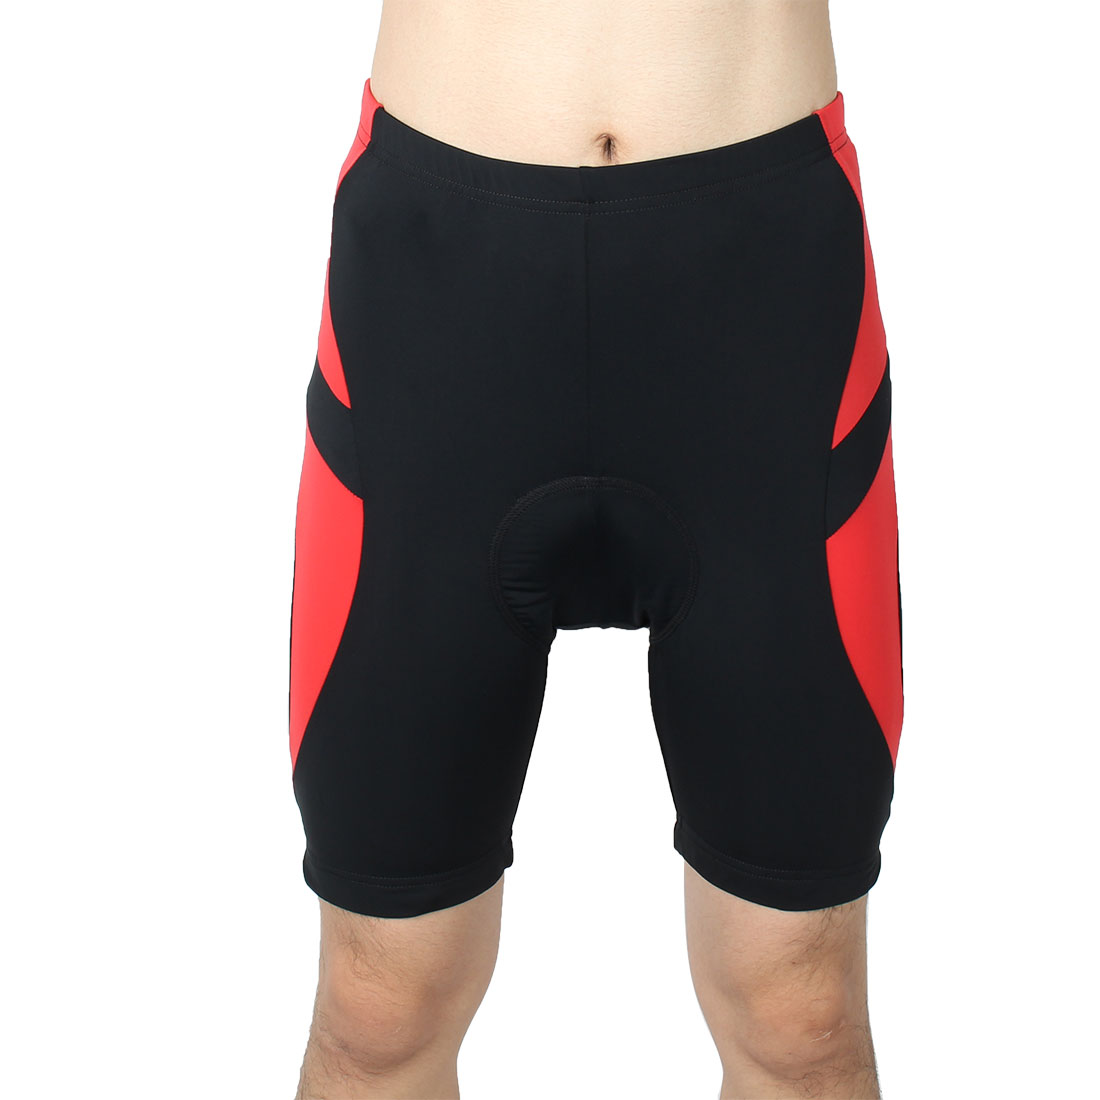 Men Outdoor Bicycle Underwear 3D Padded Breathable Cycling Sport Shorts Half Pants Black Red S (W 28)